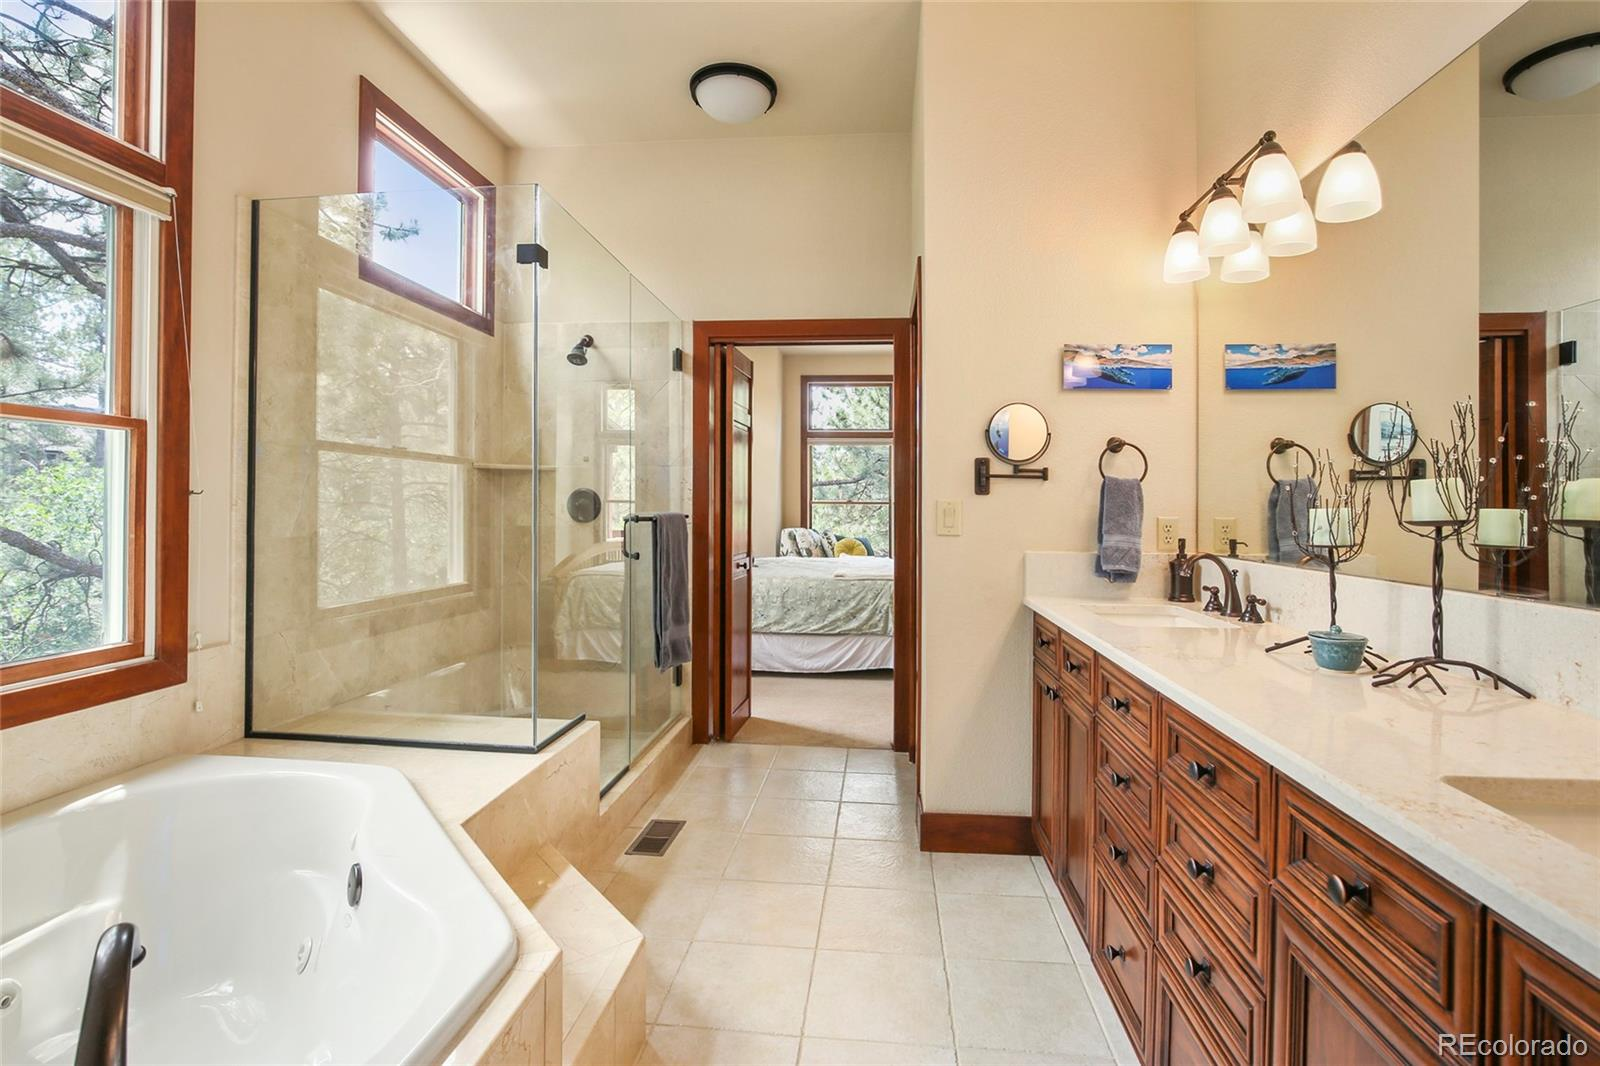 MLS# 8150320 - 19 - 1198 Forest Trails Drive, Castle Pines, CO 80108